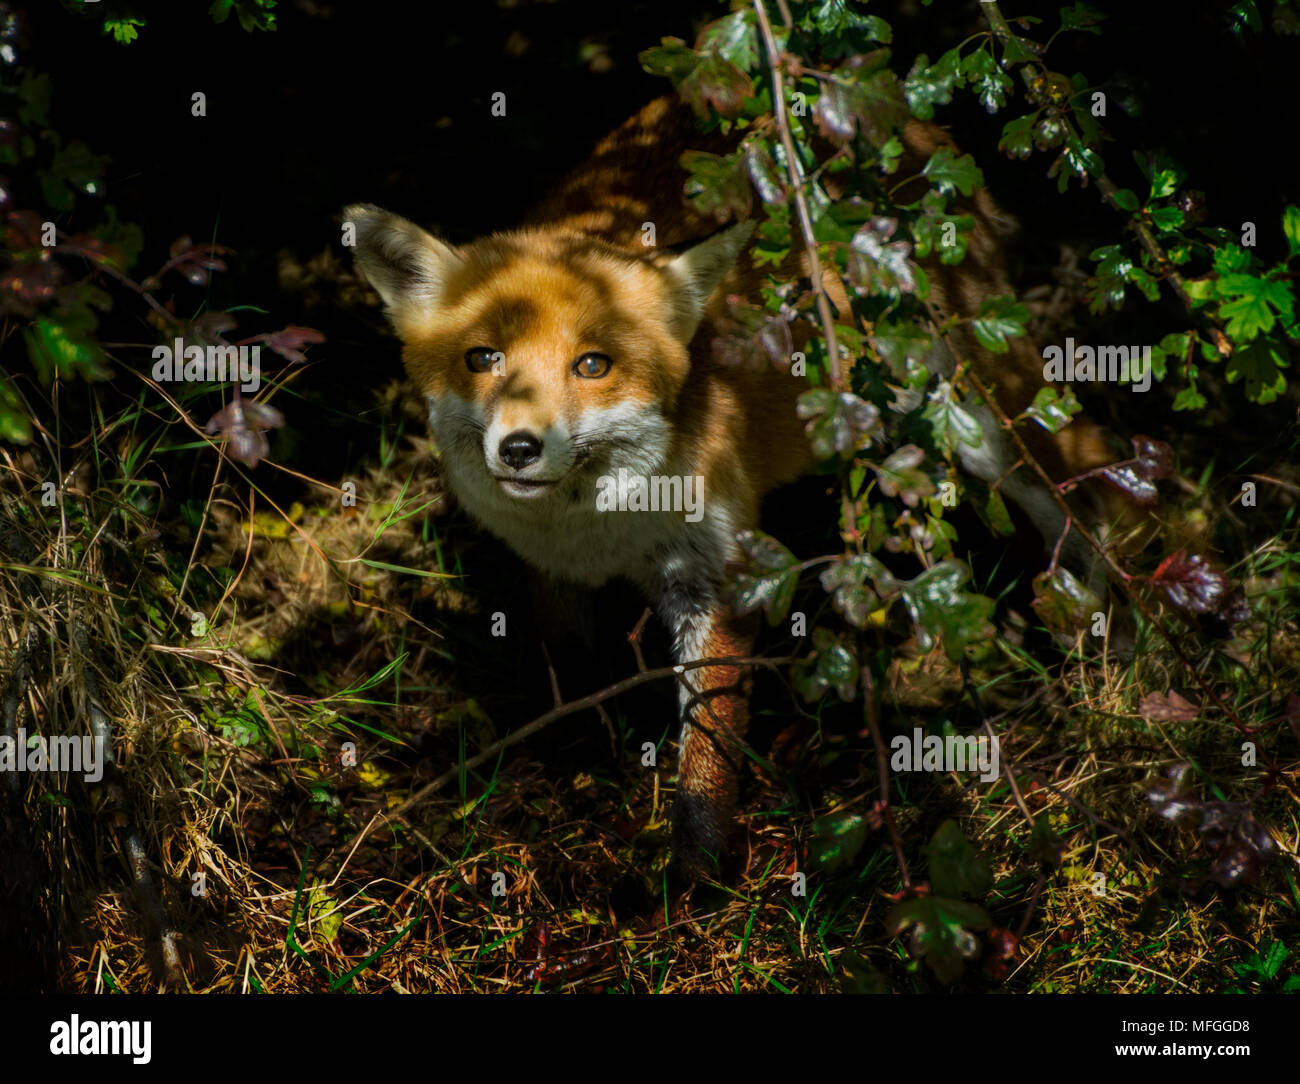 Vixen venturing out from undergrowth - Stock Image